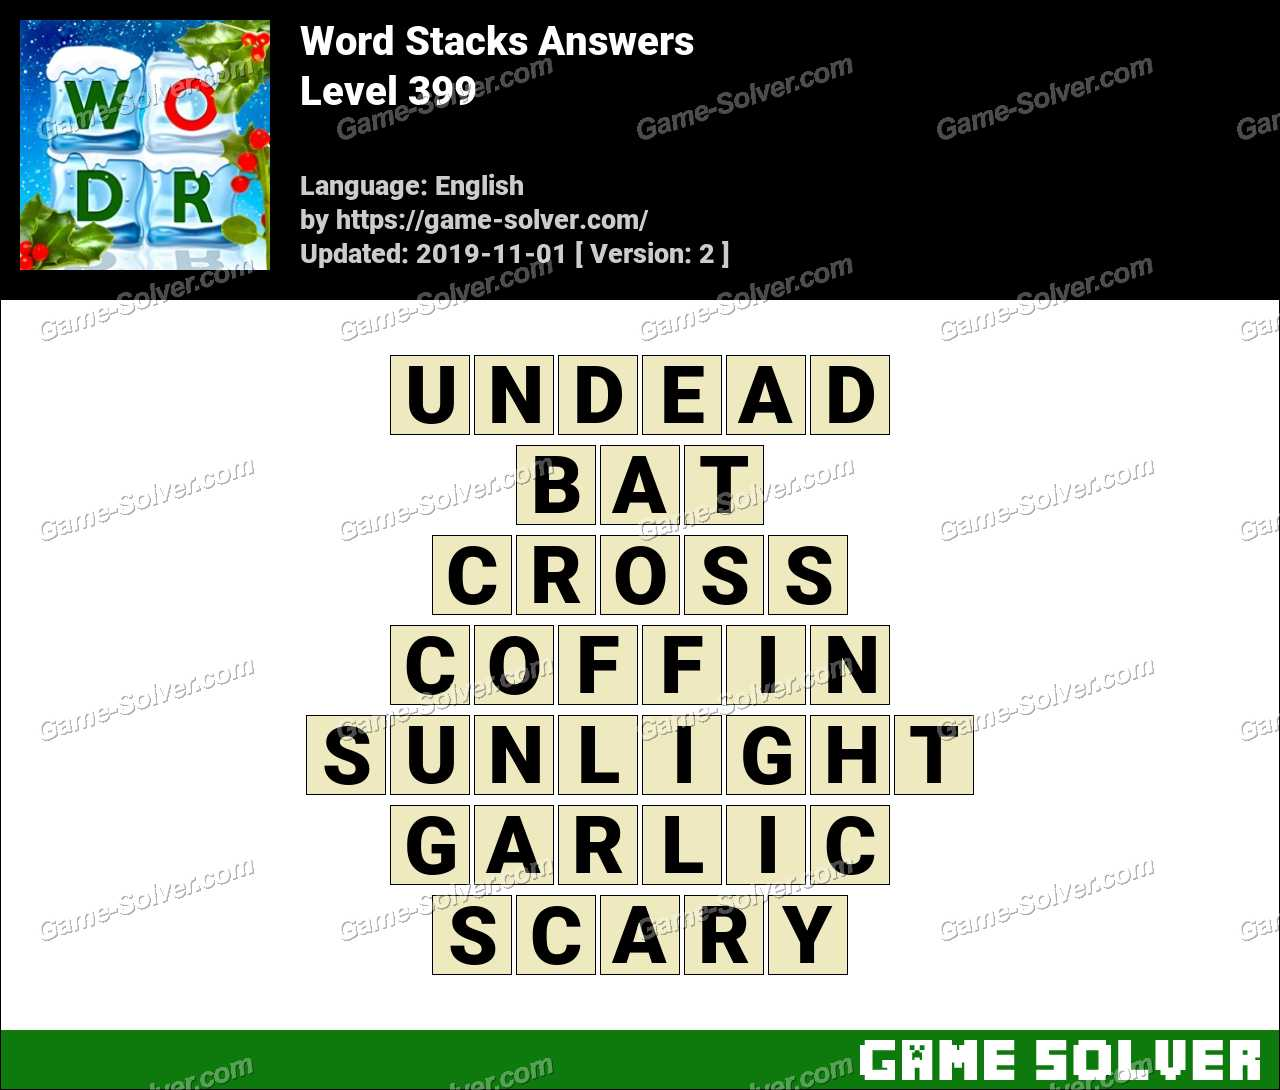 Word Stacks Level 399 Answers